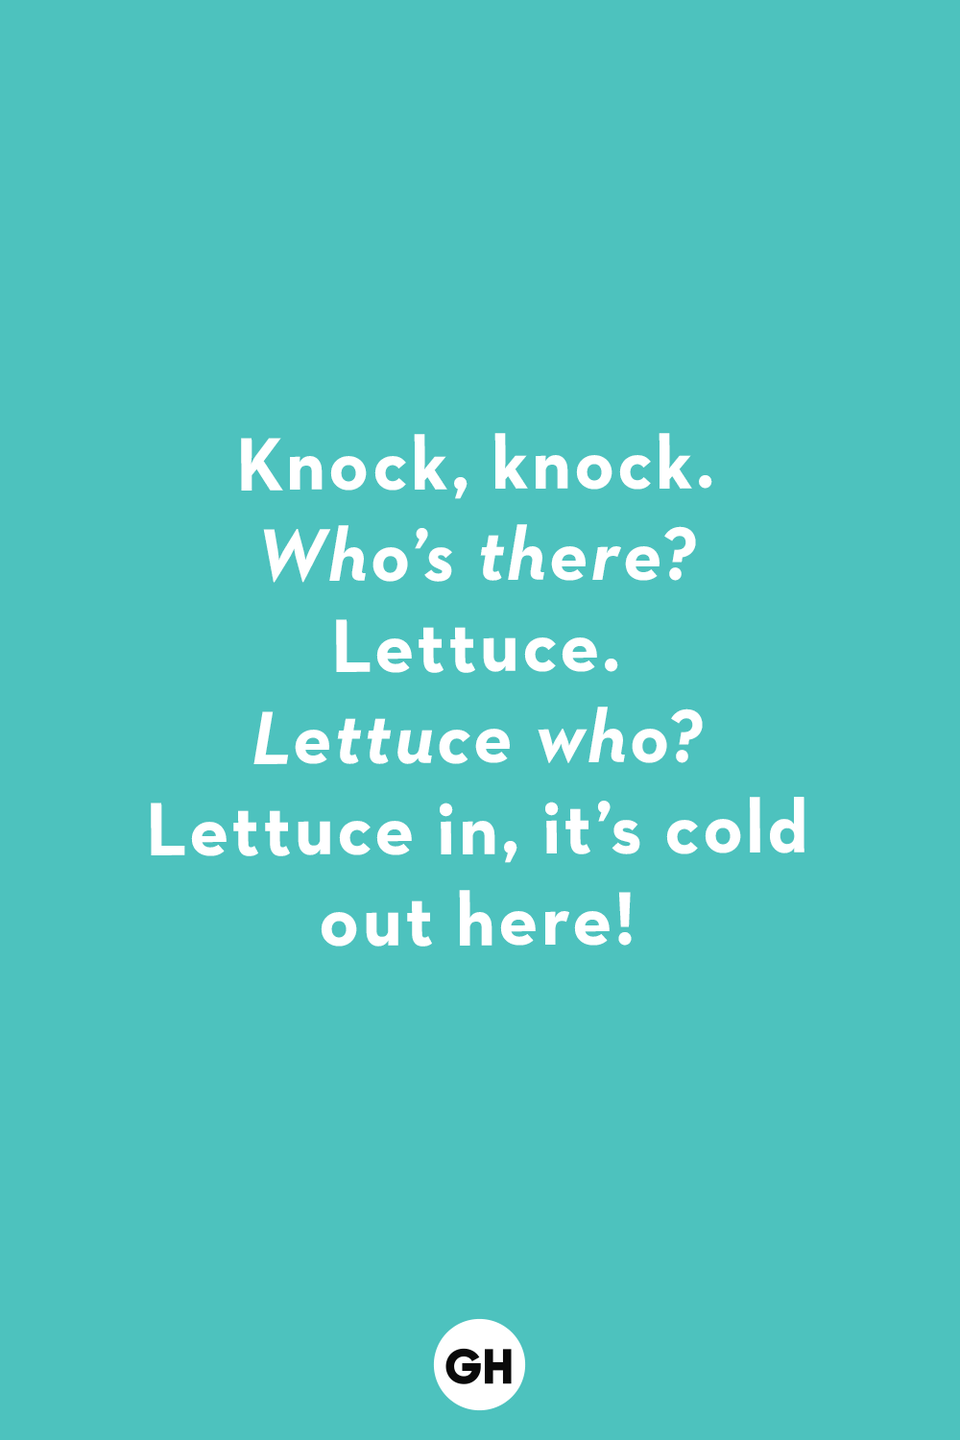 <p><em>Who's there?</em><br></p><p>Lettuce.</p><p><em>Lettuce who?</em></p><p>Lettuce in, it's cold out here!</p>